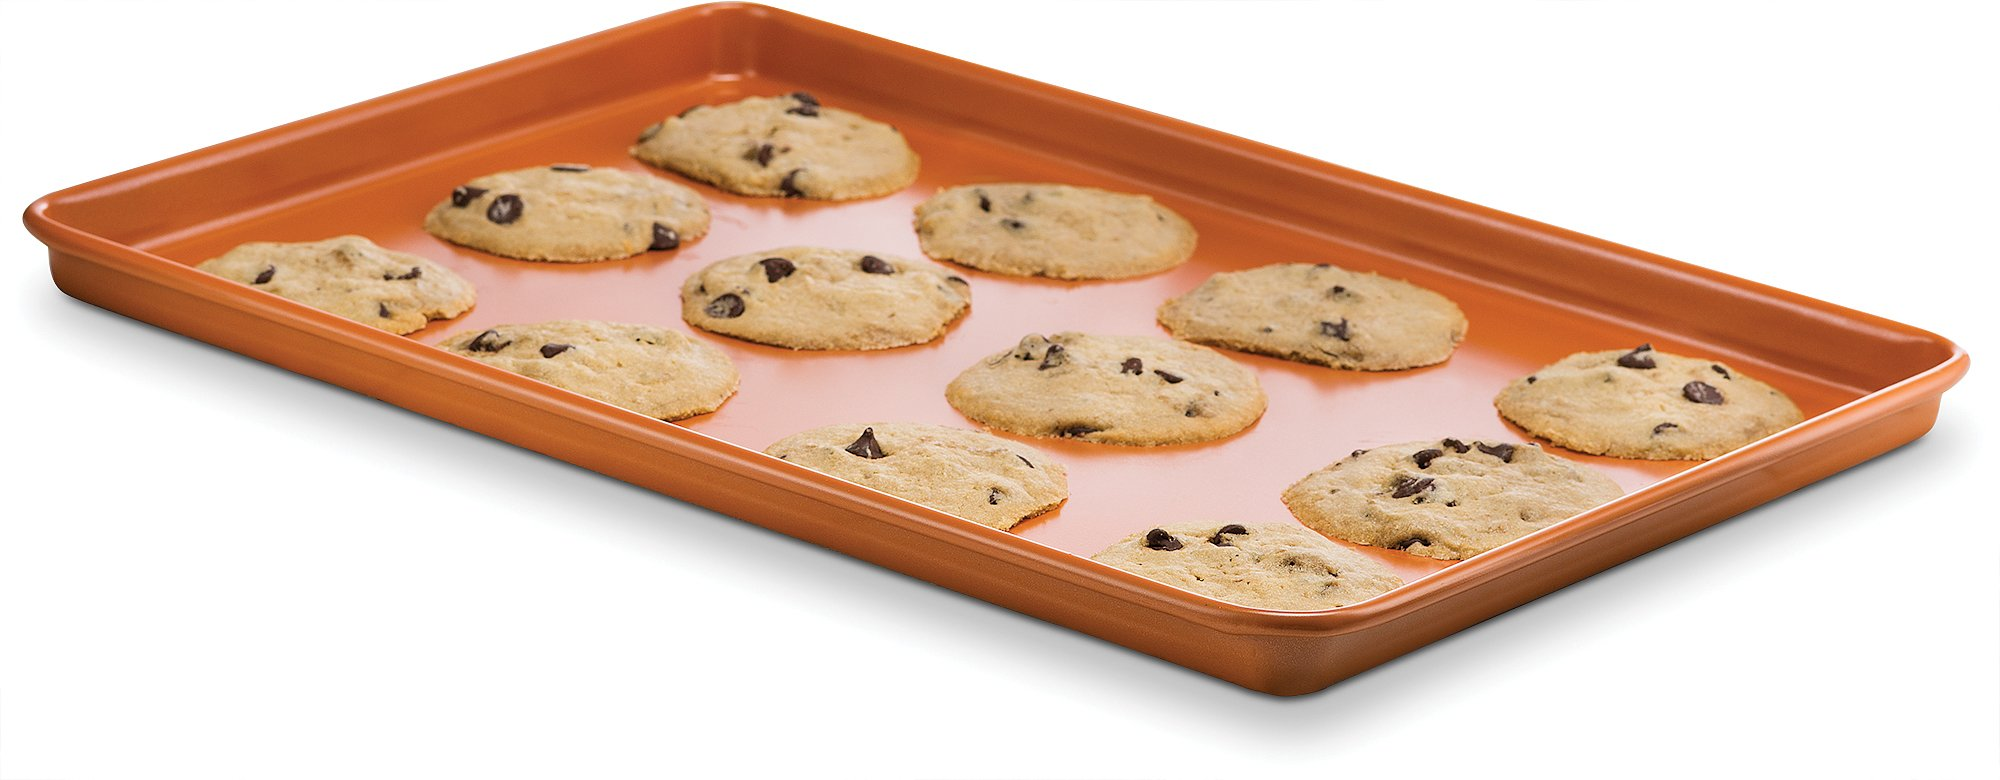 Ceramic Coated Cookie Sheet 17.3'' x 11.6'' - Premium Nonstick, Even Baking, Dishwasher and Oven Safe - PTFE/PFOA Free - Red Cookware and Bakeware by Bovado USA by BOVADO USA (Image #2)